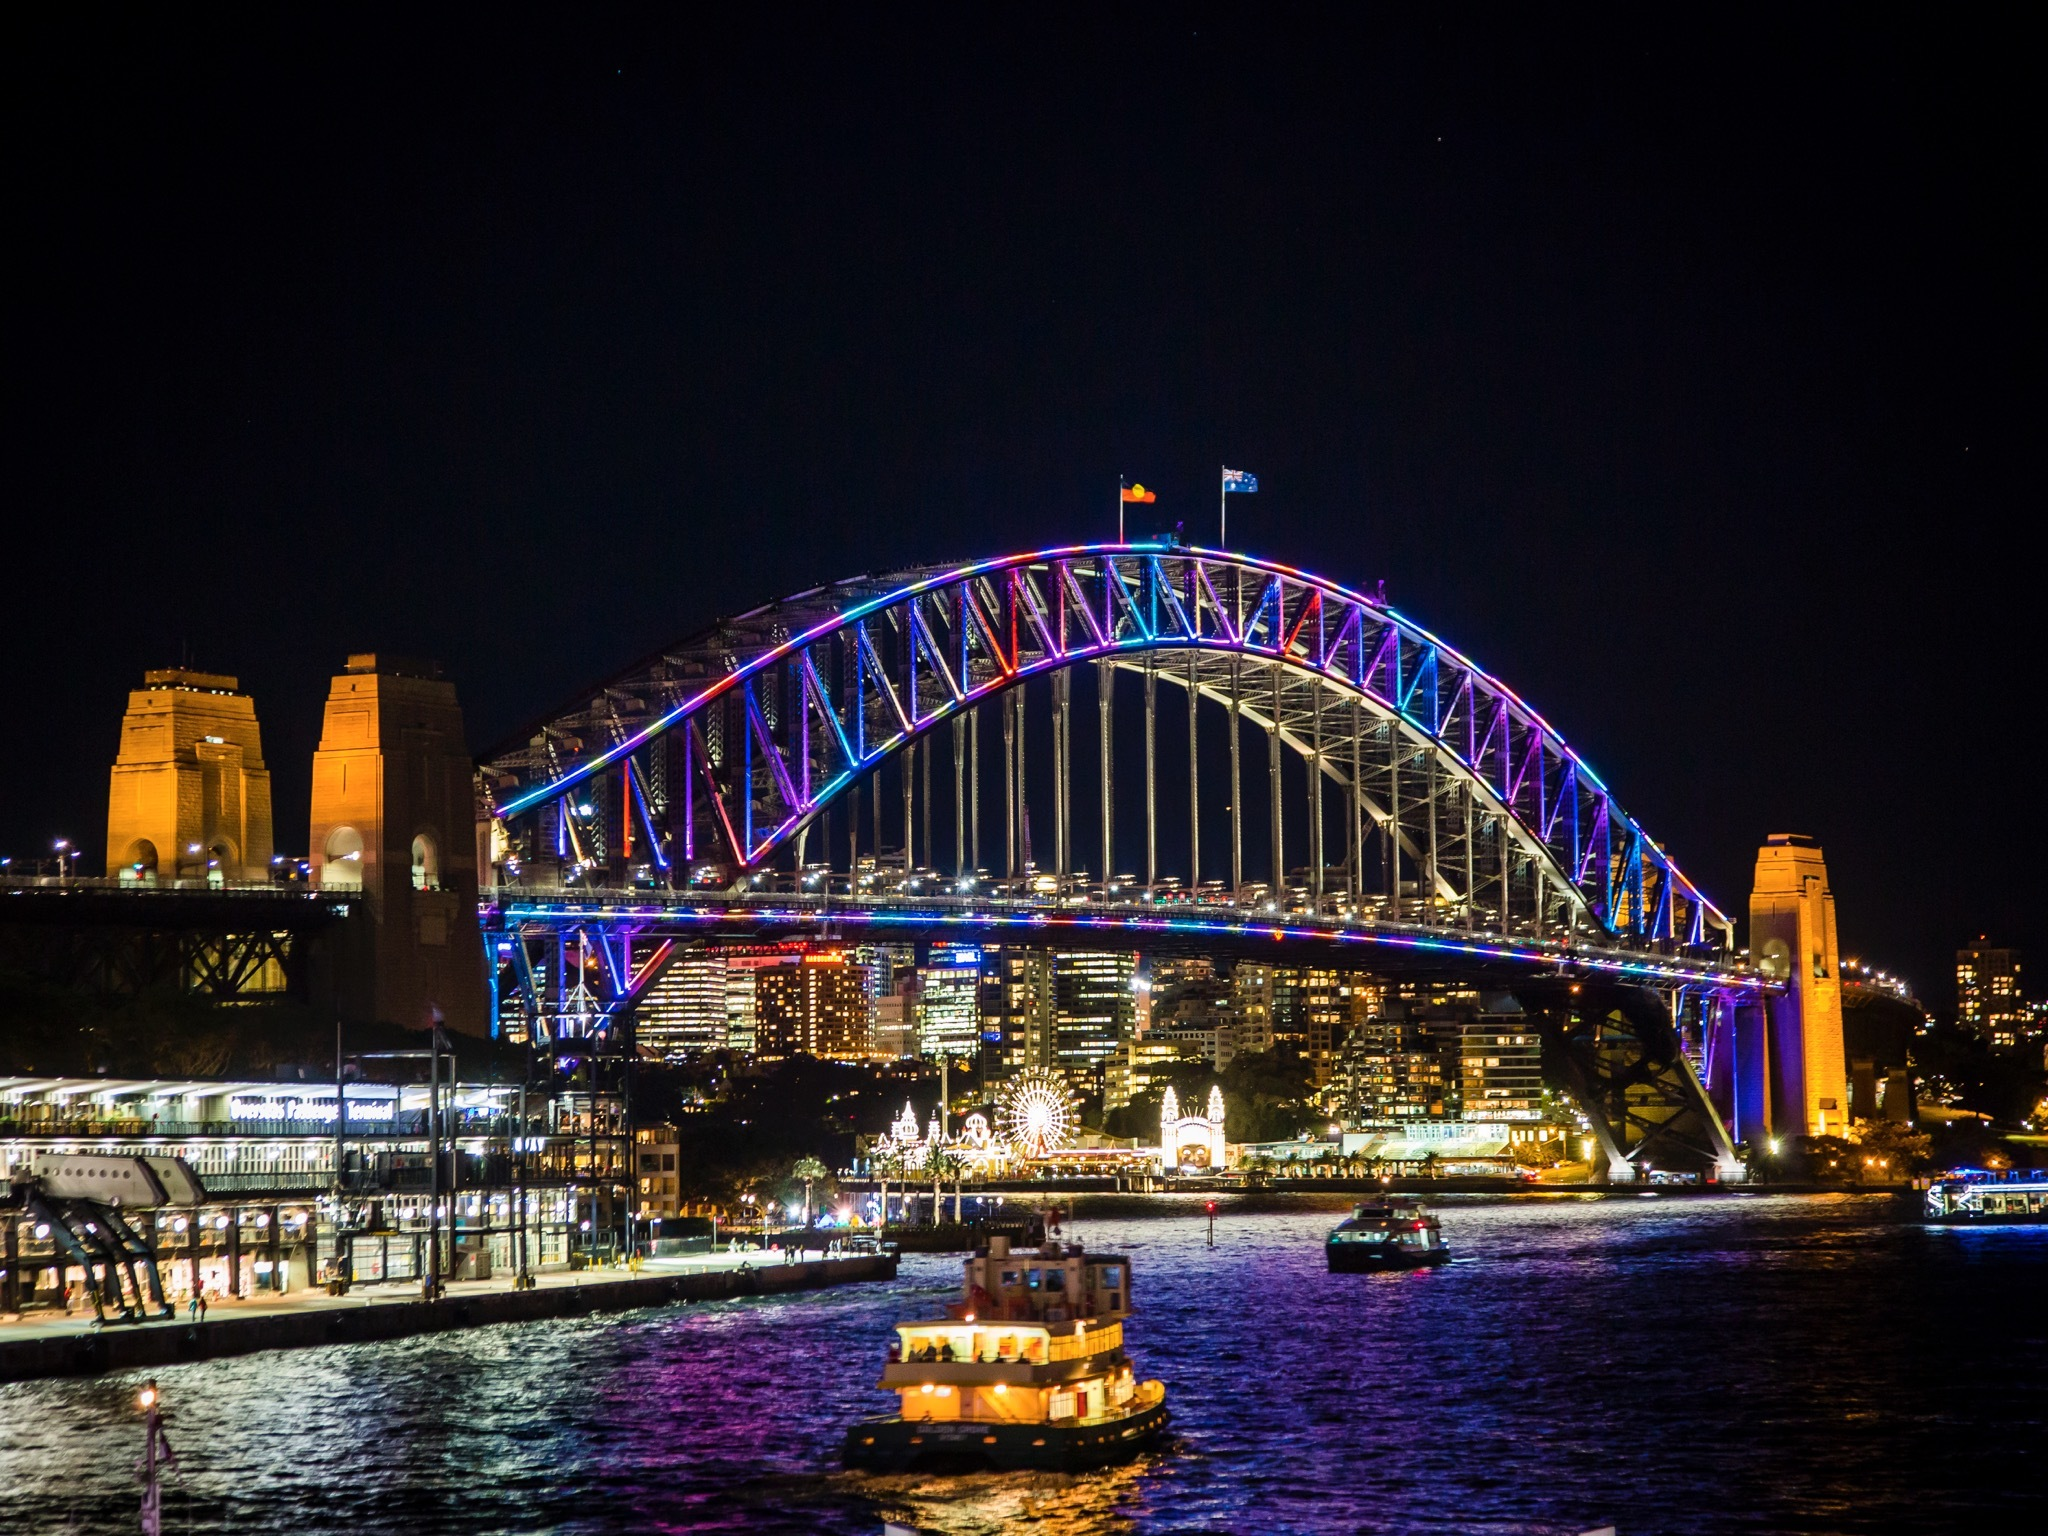 Sydney Harbour Bridge at Vivid Lights 2016